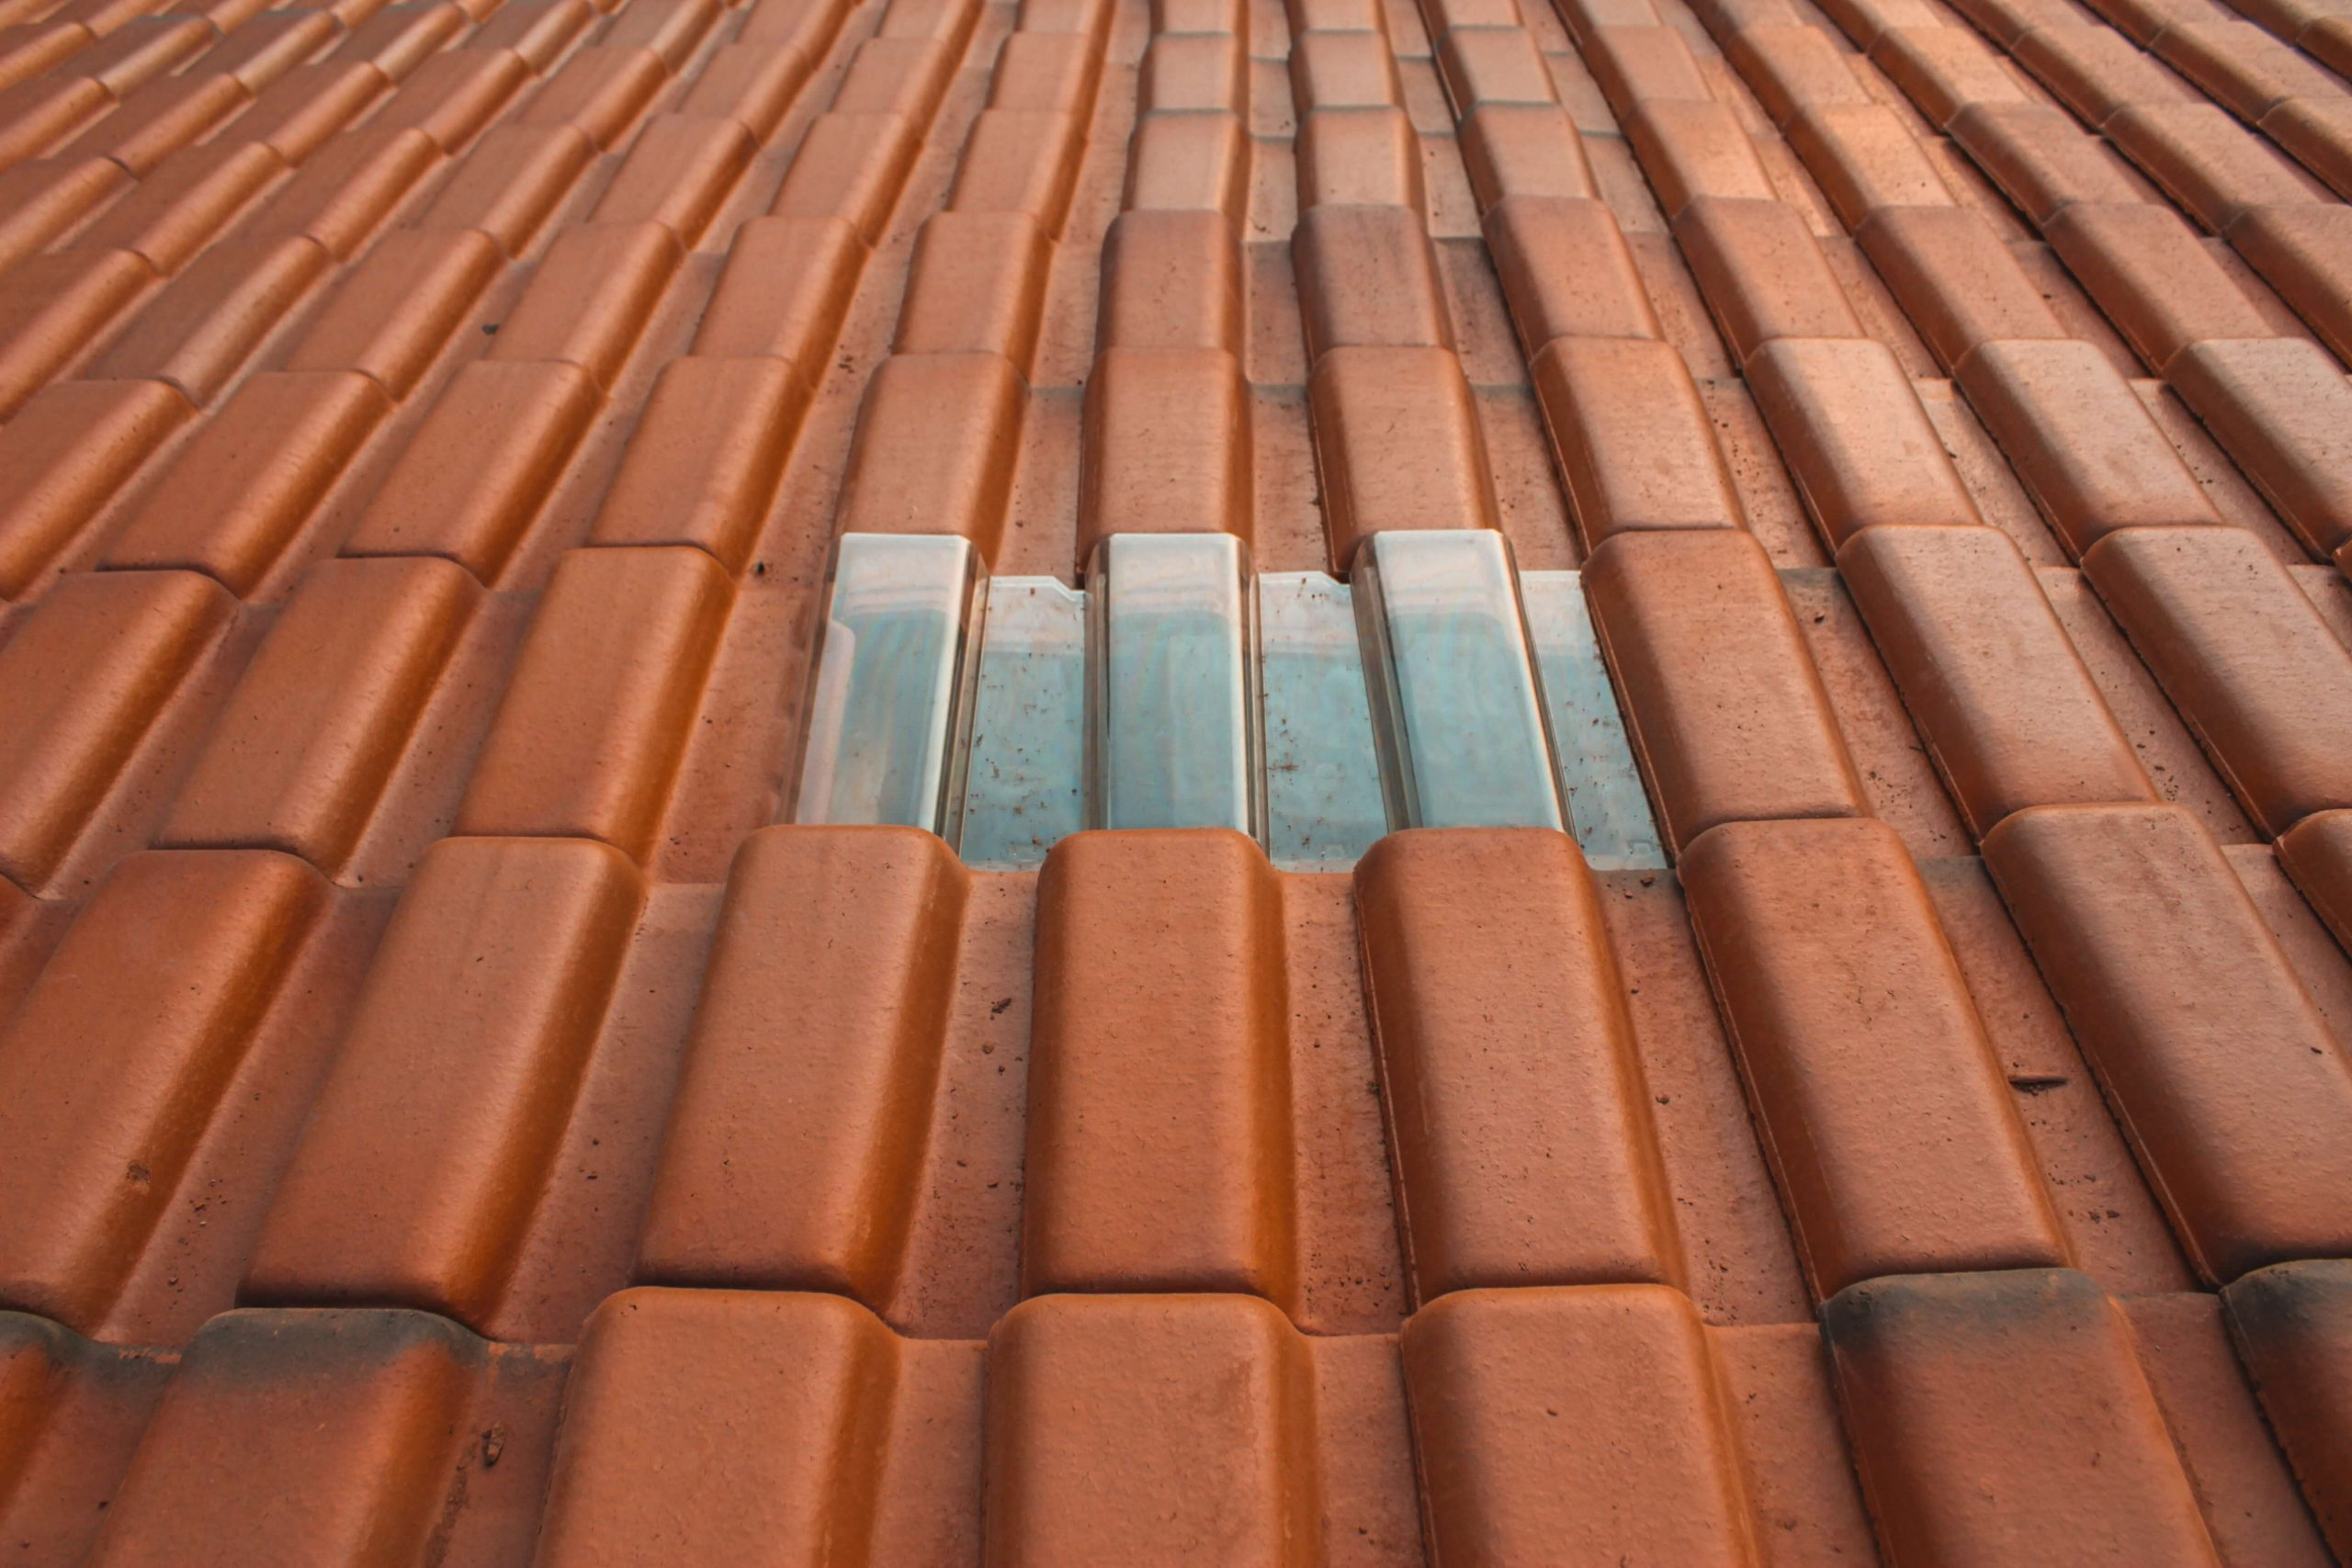 How to Choose the Right Roofing Contractor - A close up shot of rust-colored roofing material with a silver-colored rectangle in the center.